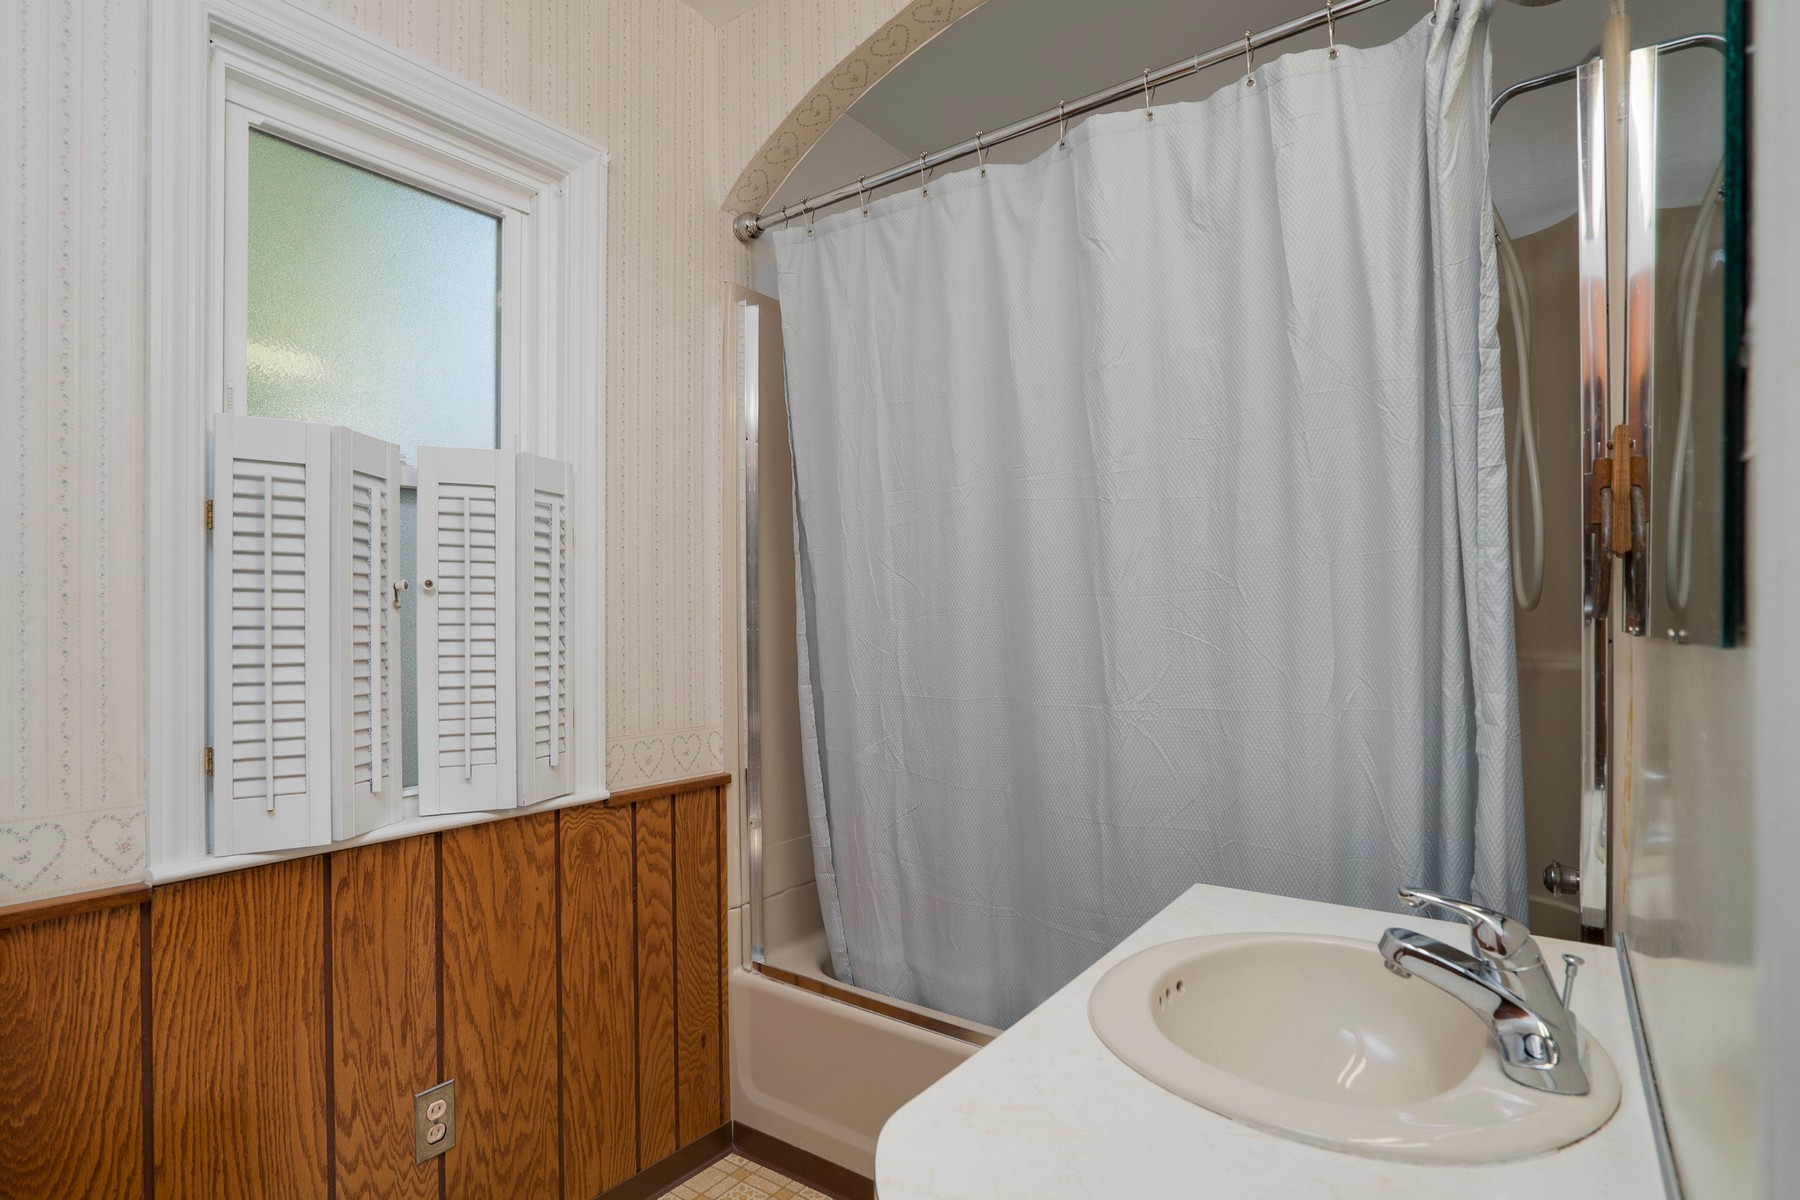 Additional photo for property listing at GiGi's Home 974  Lawrence Ave Aurora, New York 14052 United States